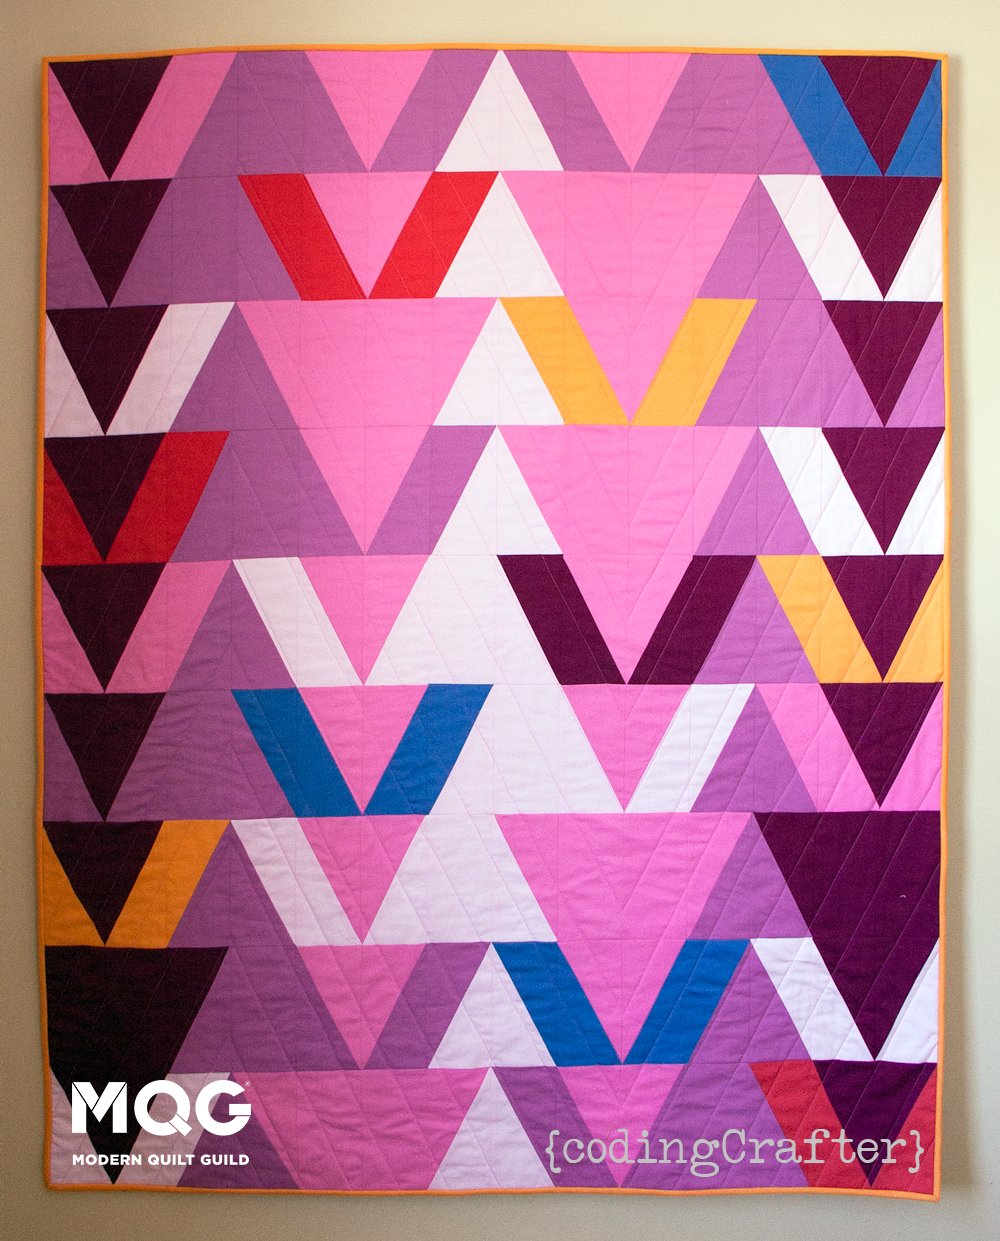 MQG Quilt of the Month, April 2015: Boids by Gillian Smith | Download the free pattern by becoming a member of the MQG at themodernquiltguild.com/join.